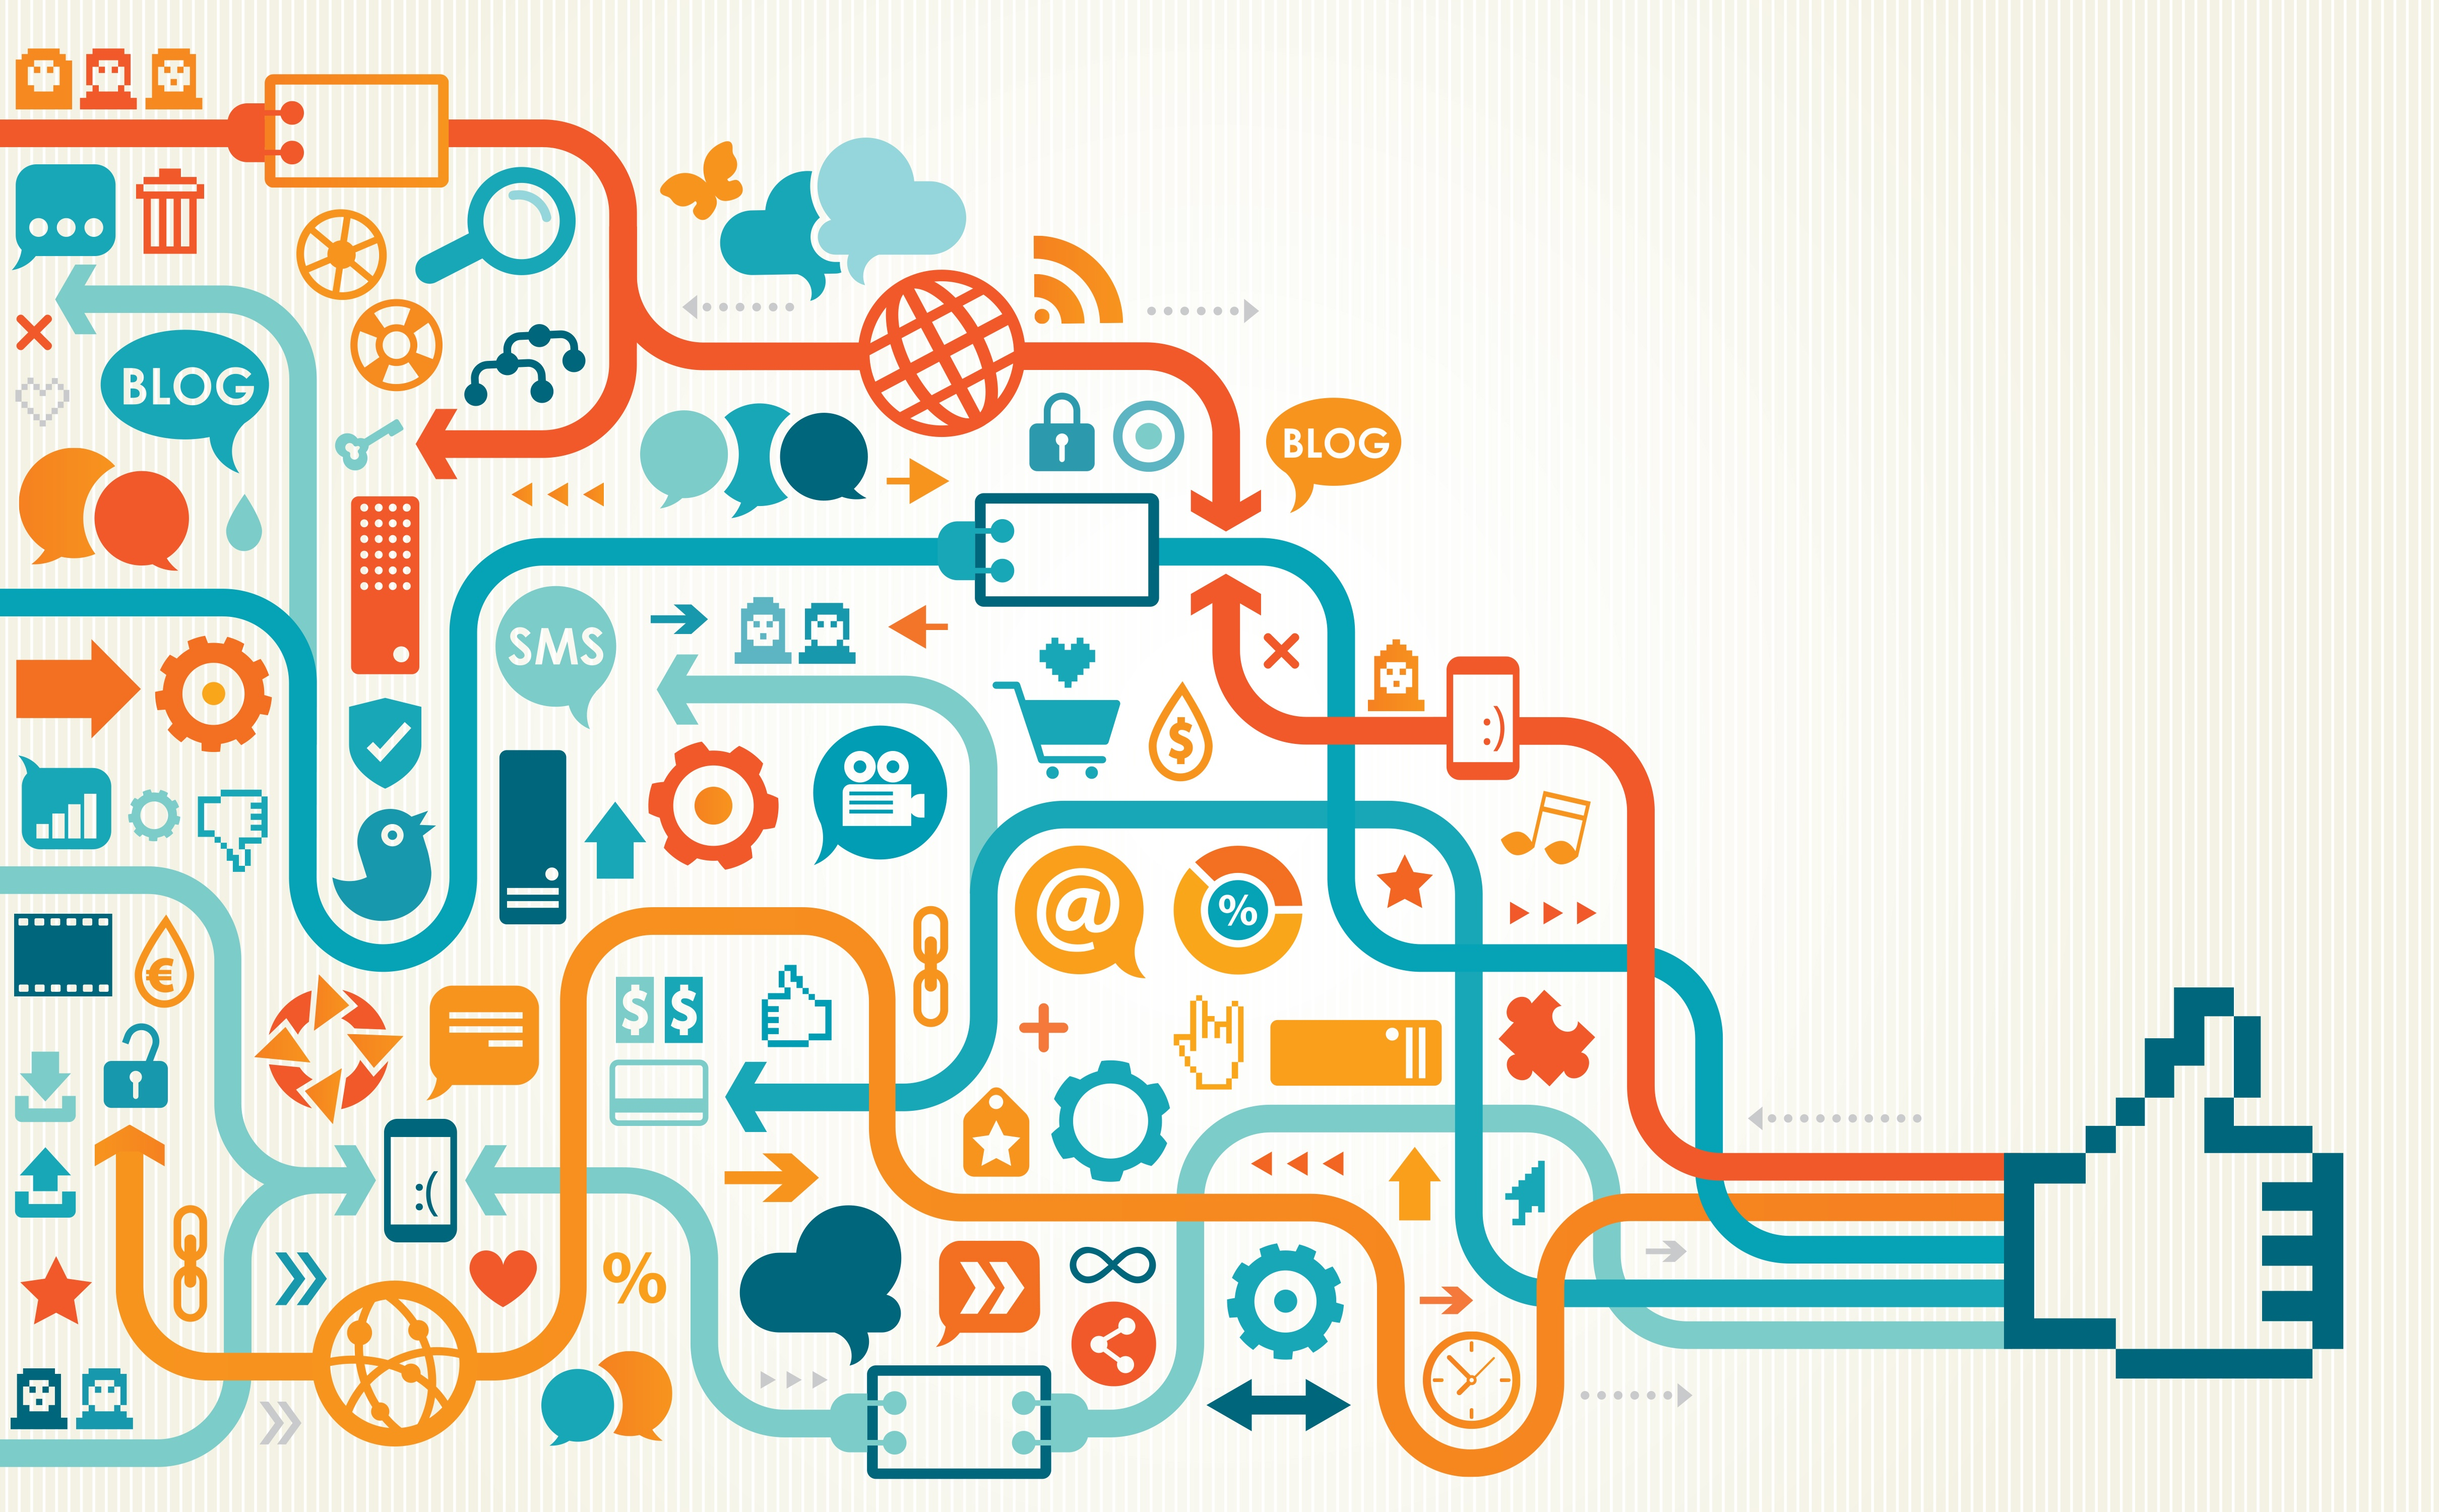 8 Questions to Ask When Setting Up Your Brand's Social Media Strategy